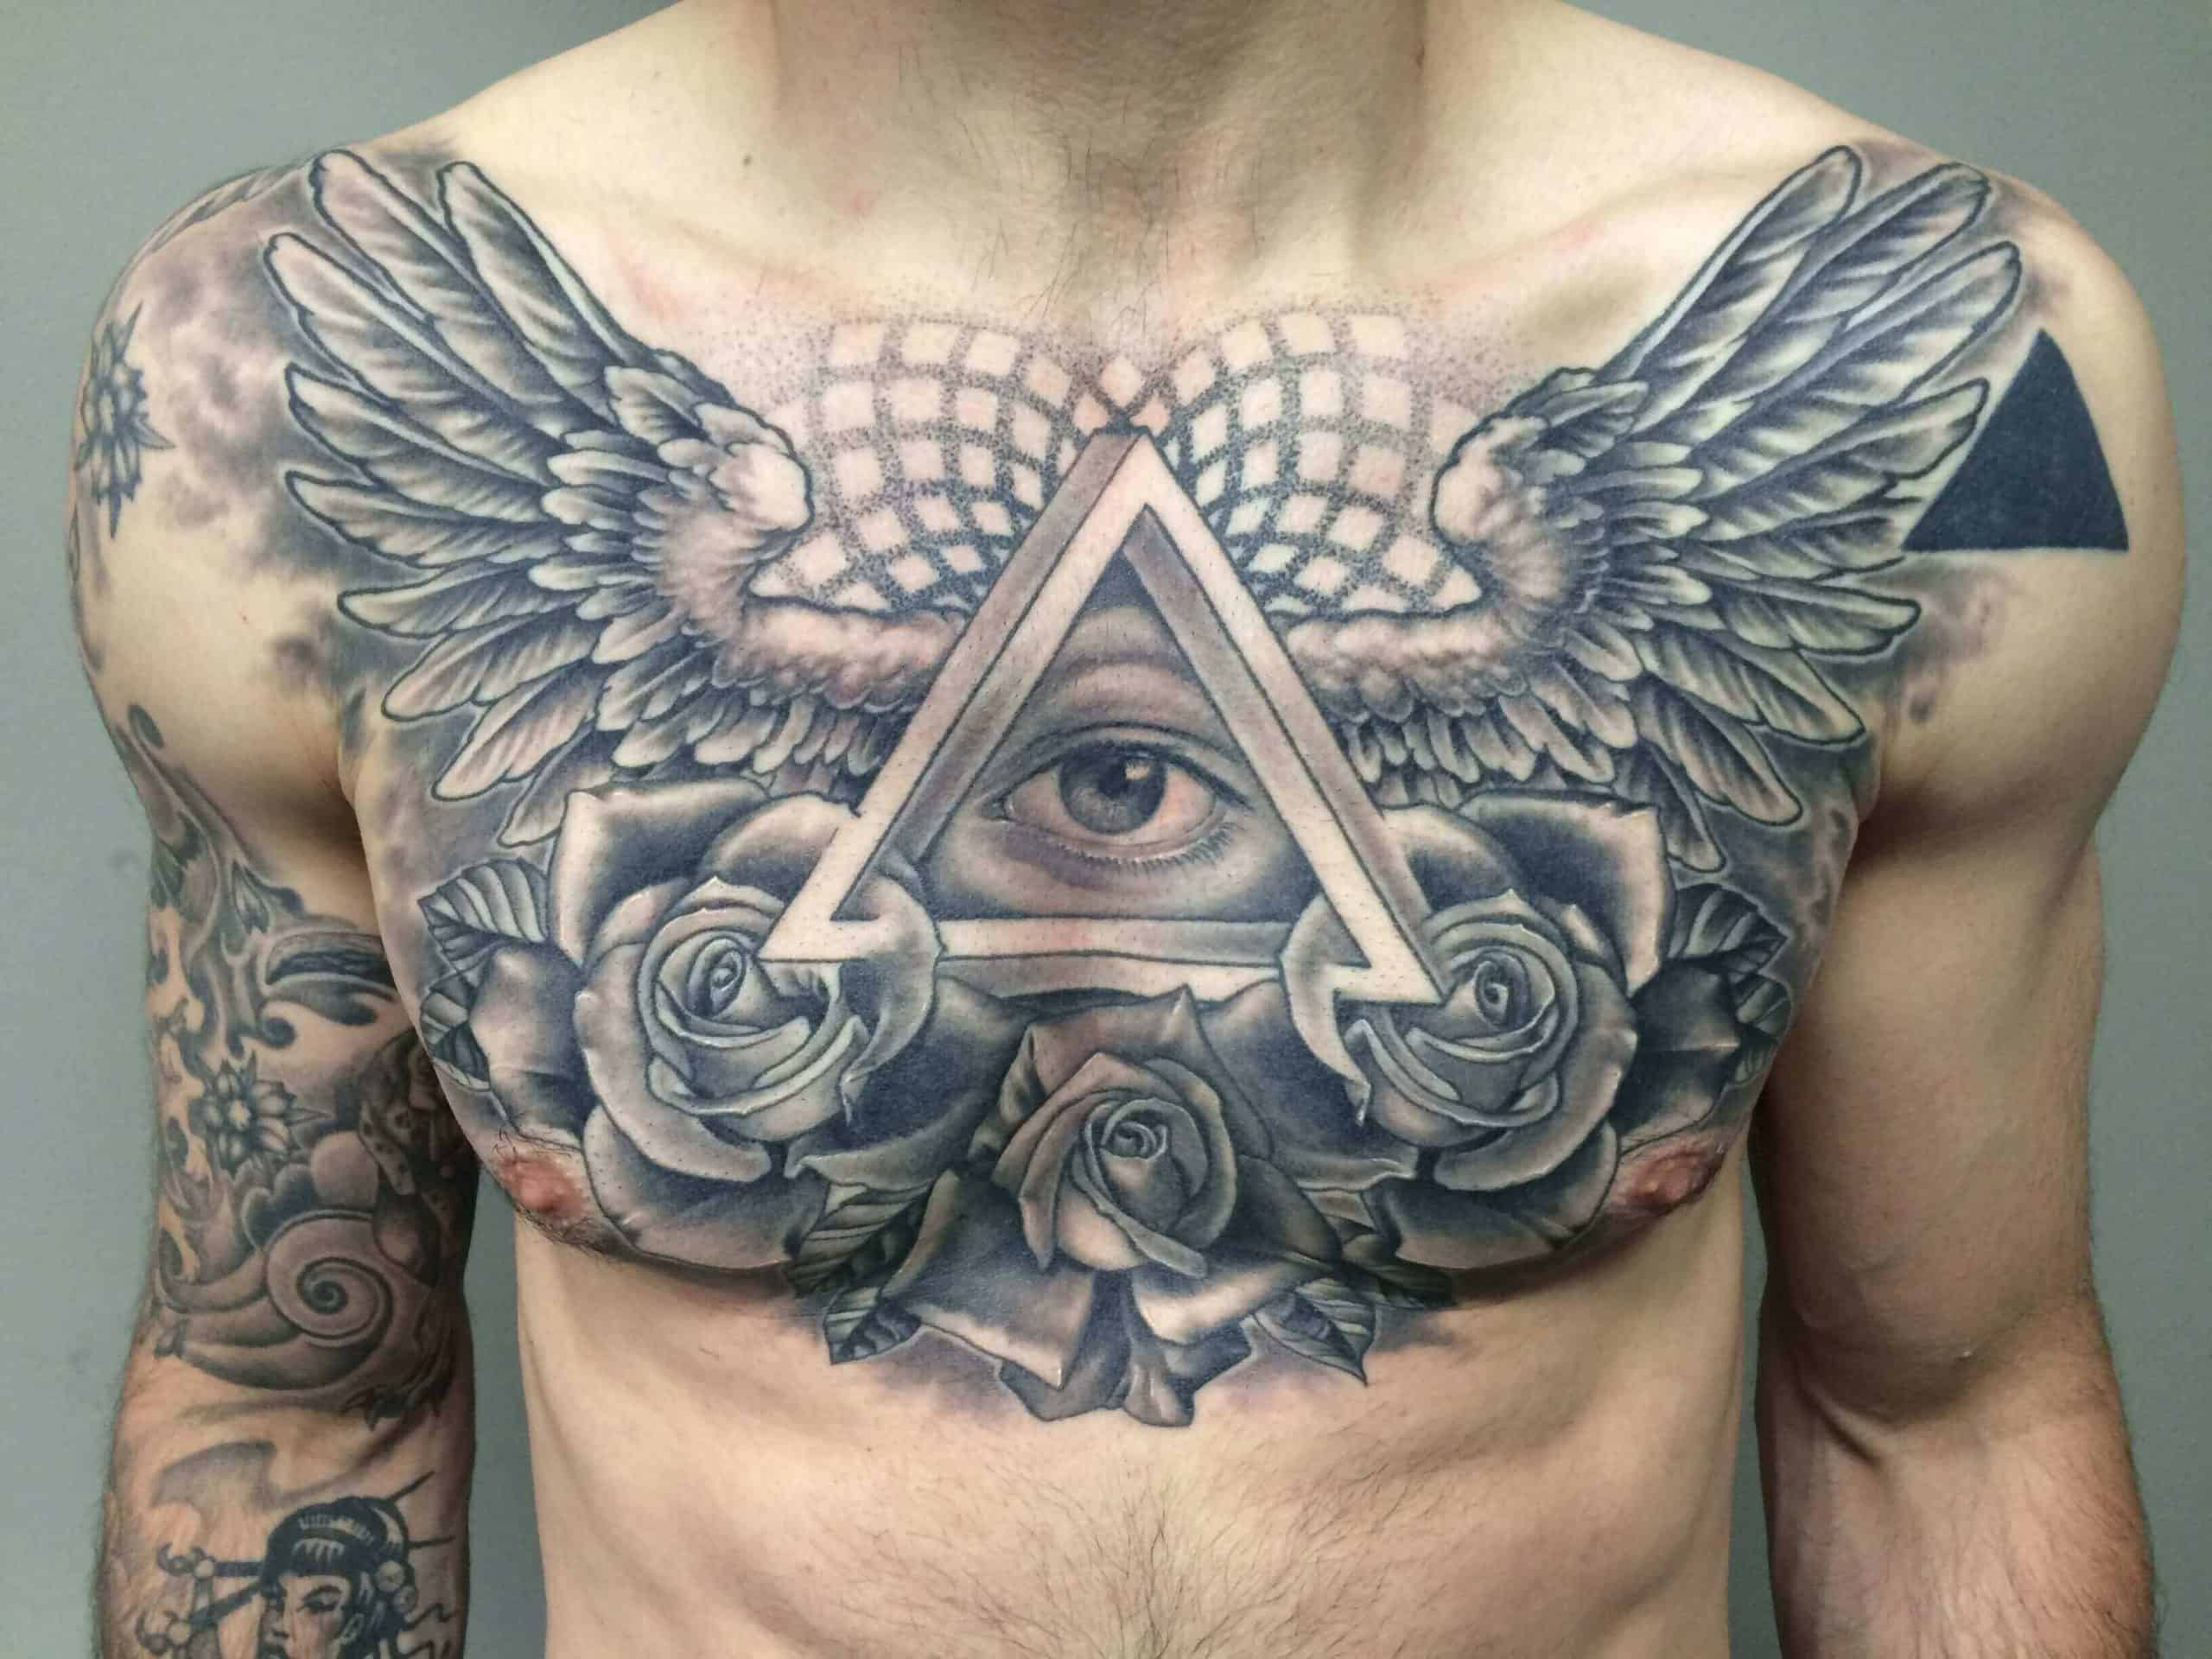 100 Incredible Egyptian Tattoo Ideas - Tattoo Inspiration & Meanings